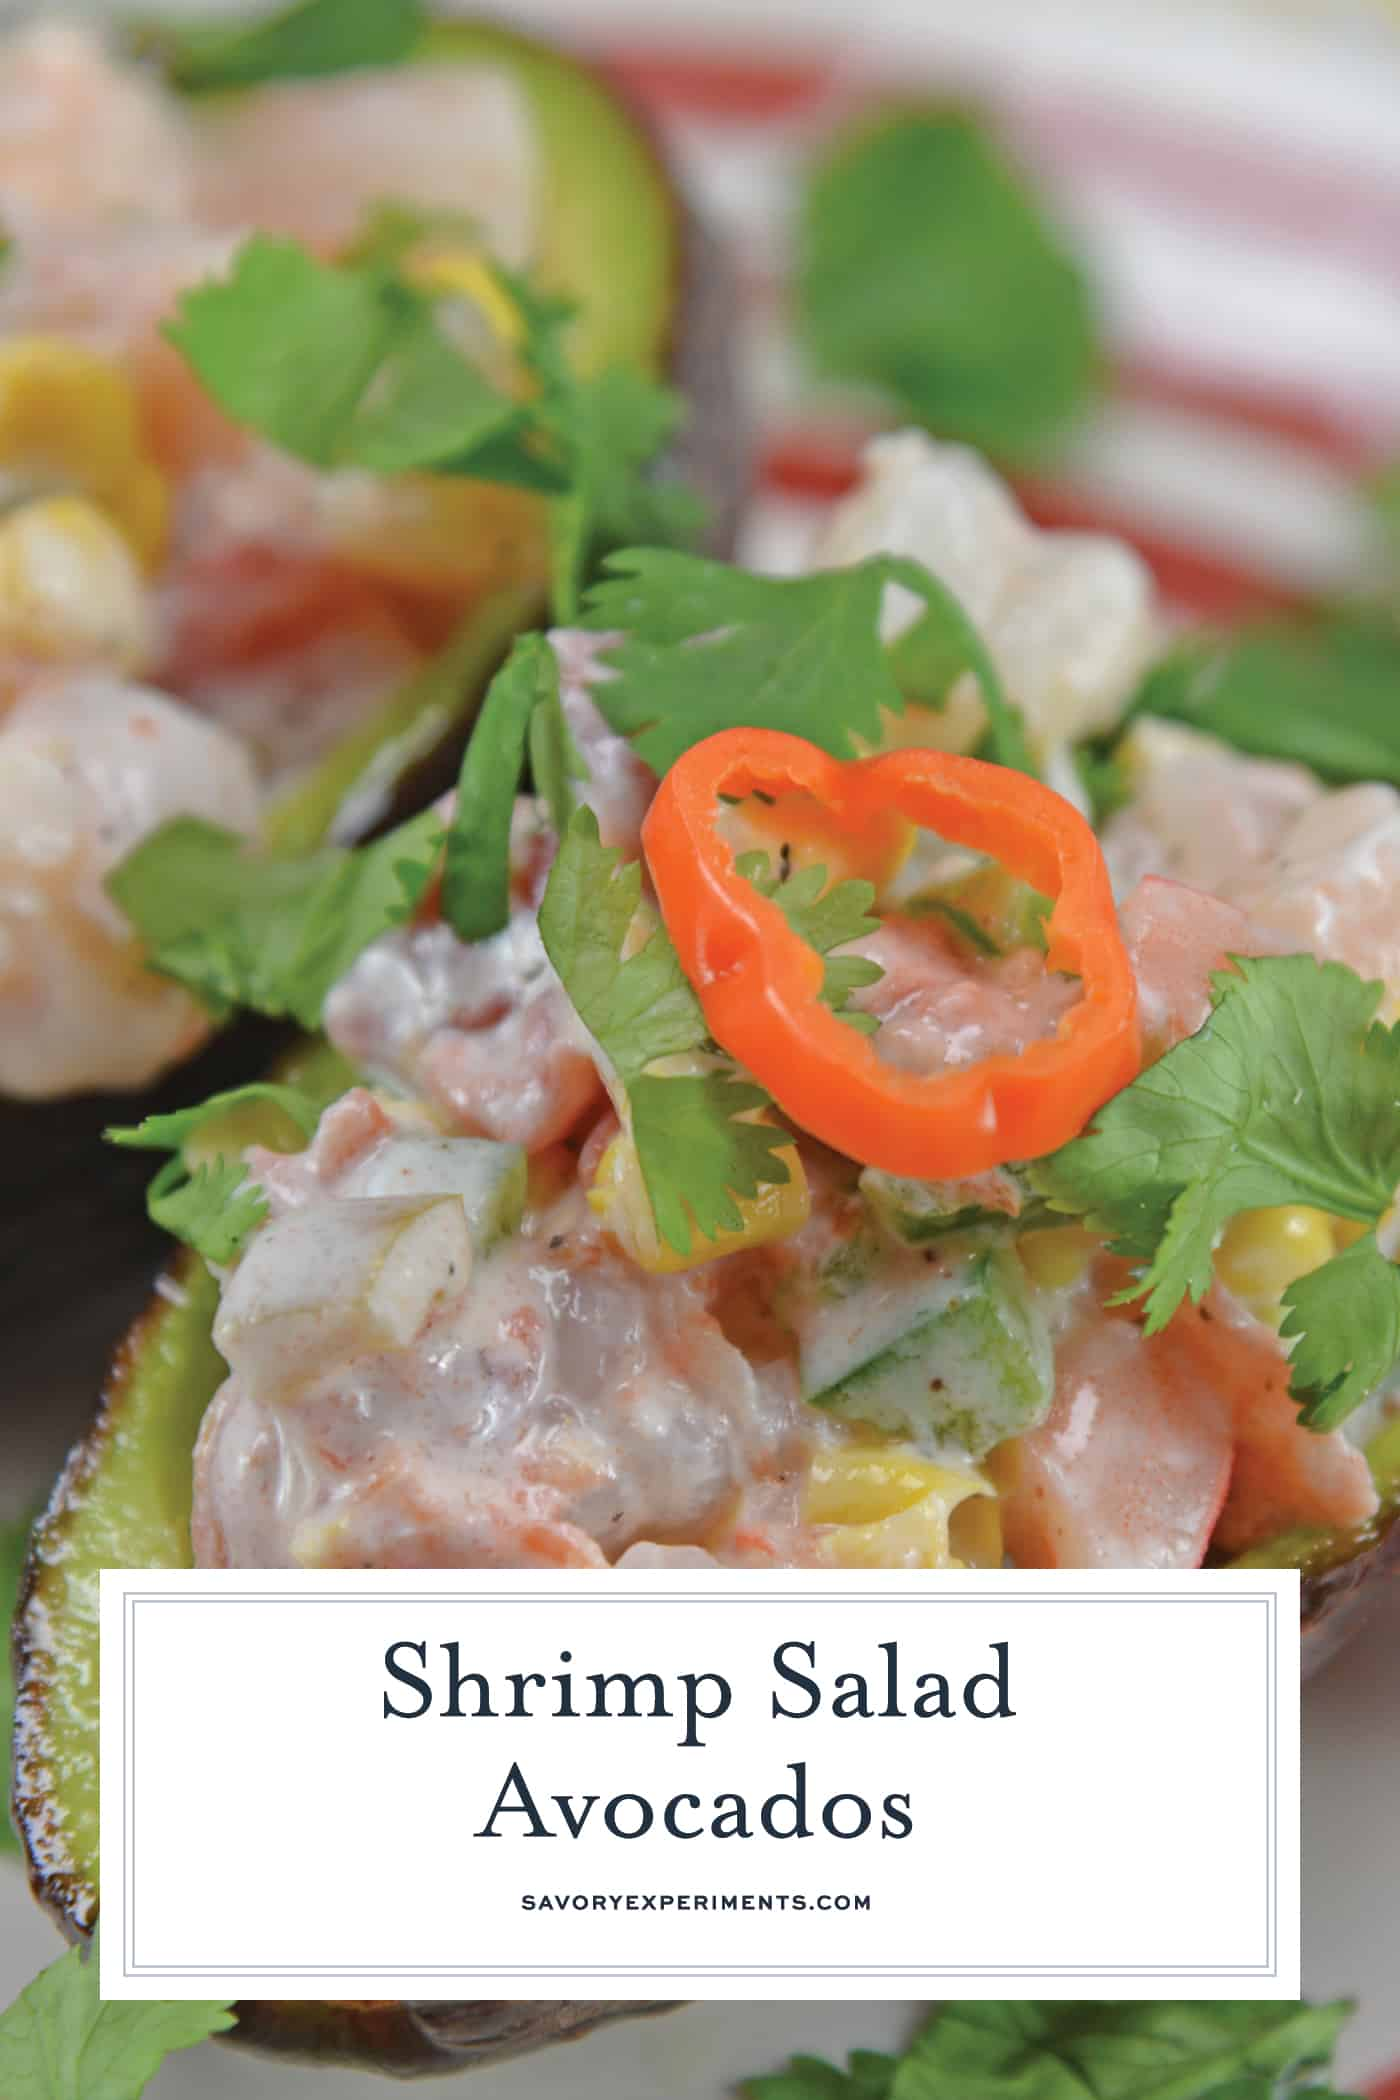 Shrimp salad in an avocado halve with habanero slice